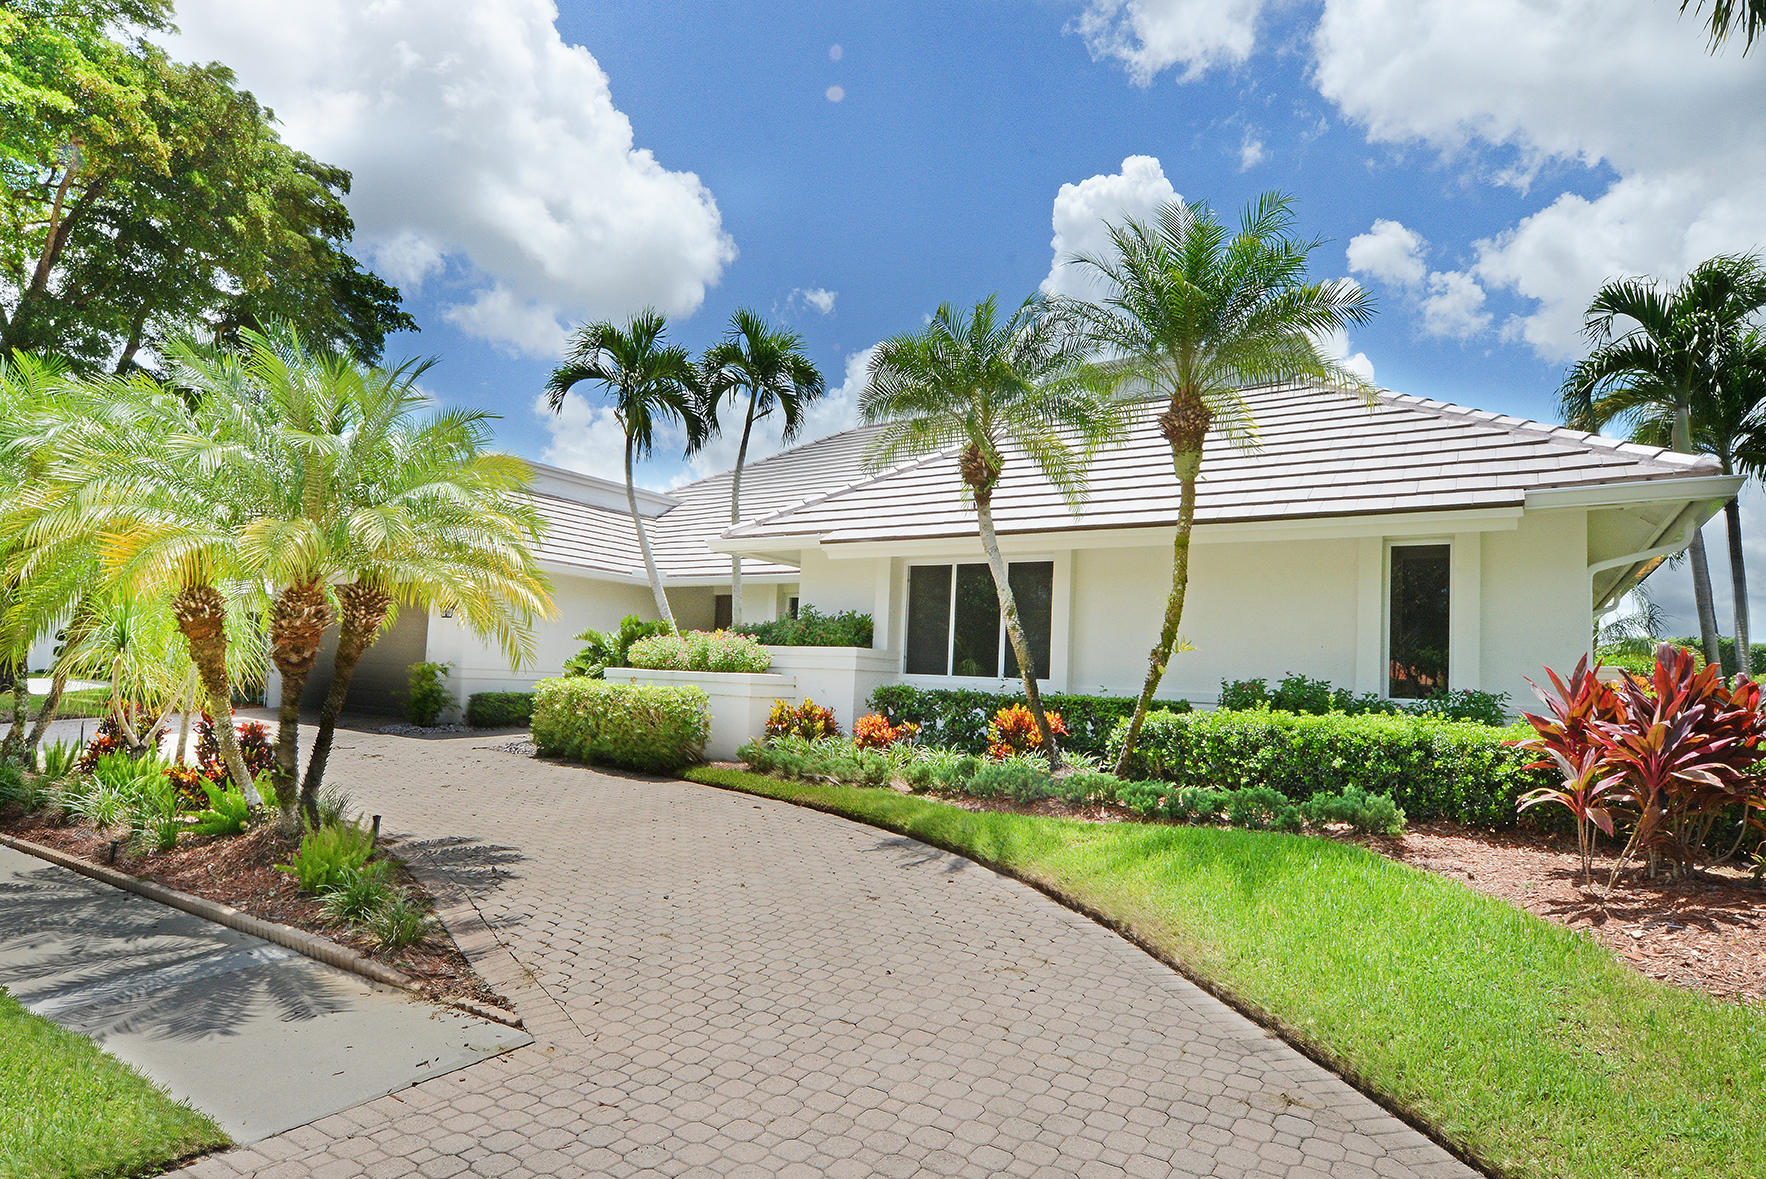 Photo of 7508 Mandarin Drive, Boca Raton, FL 33433